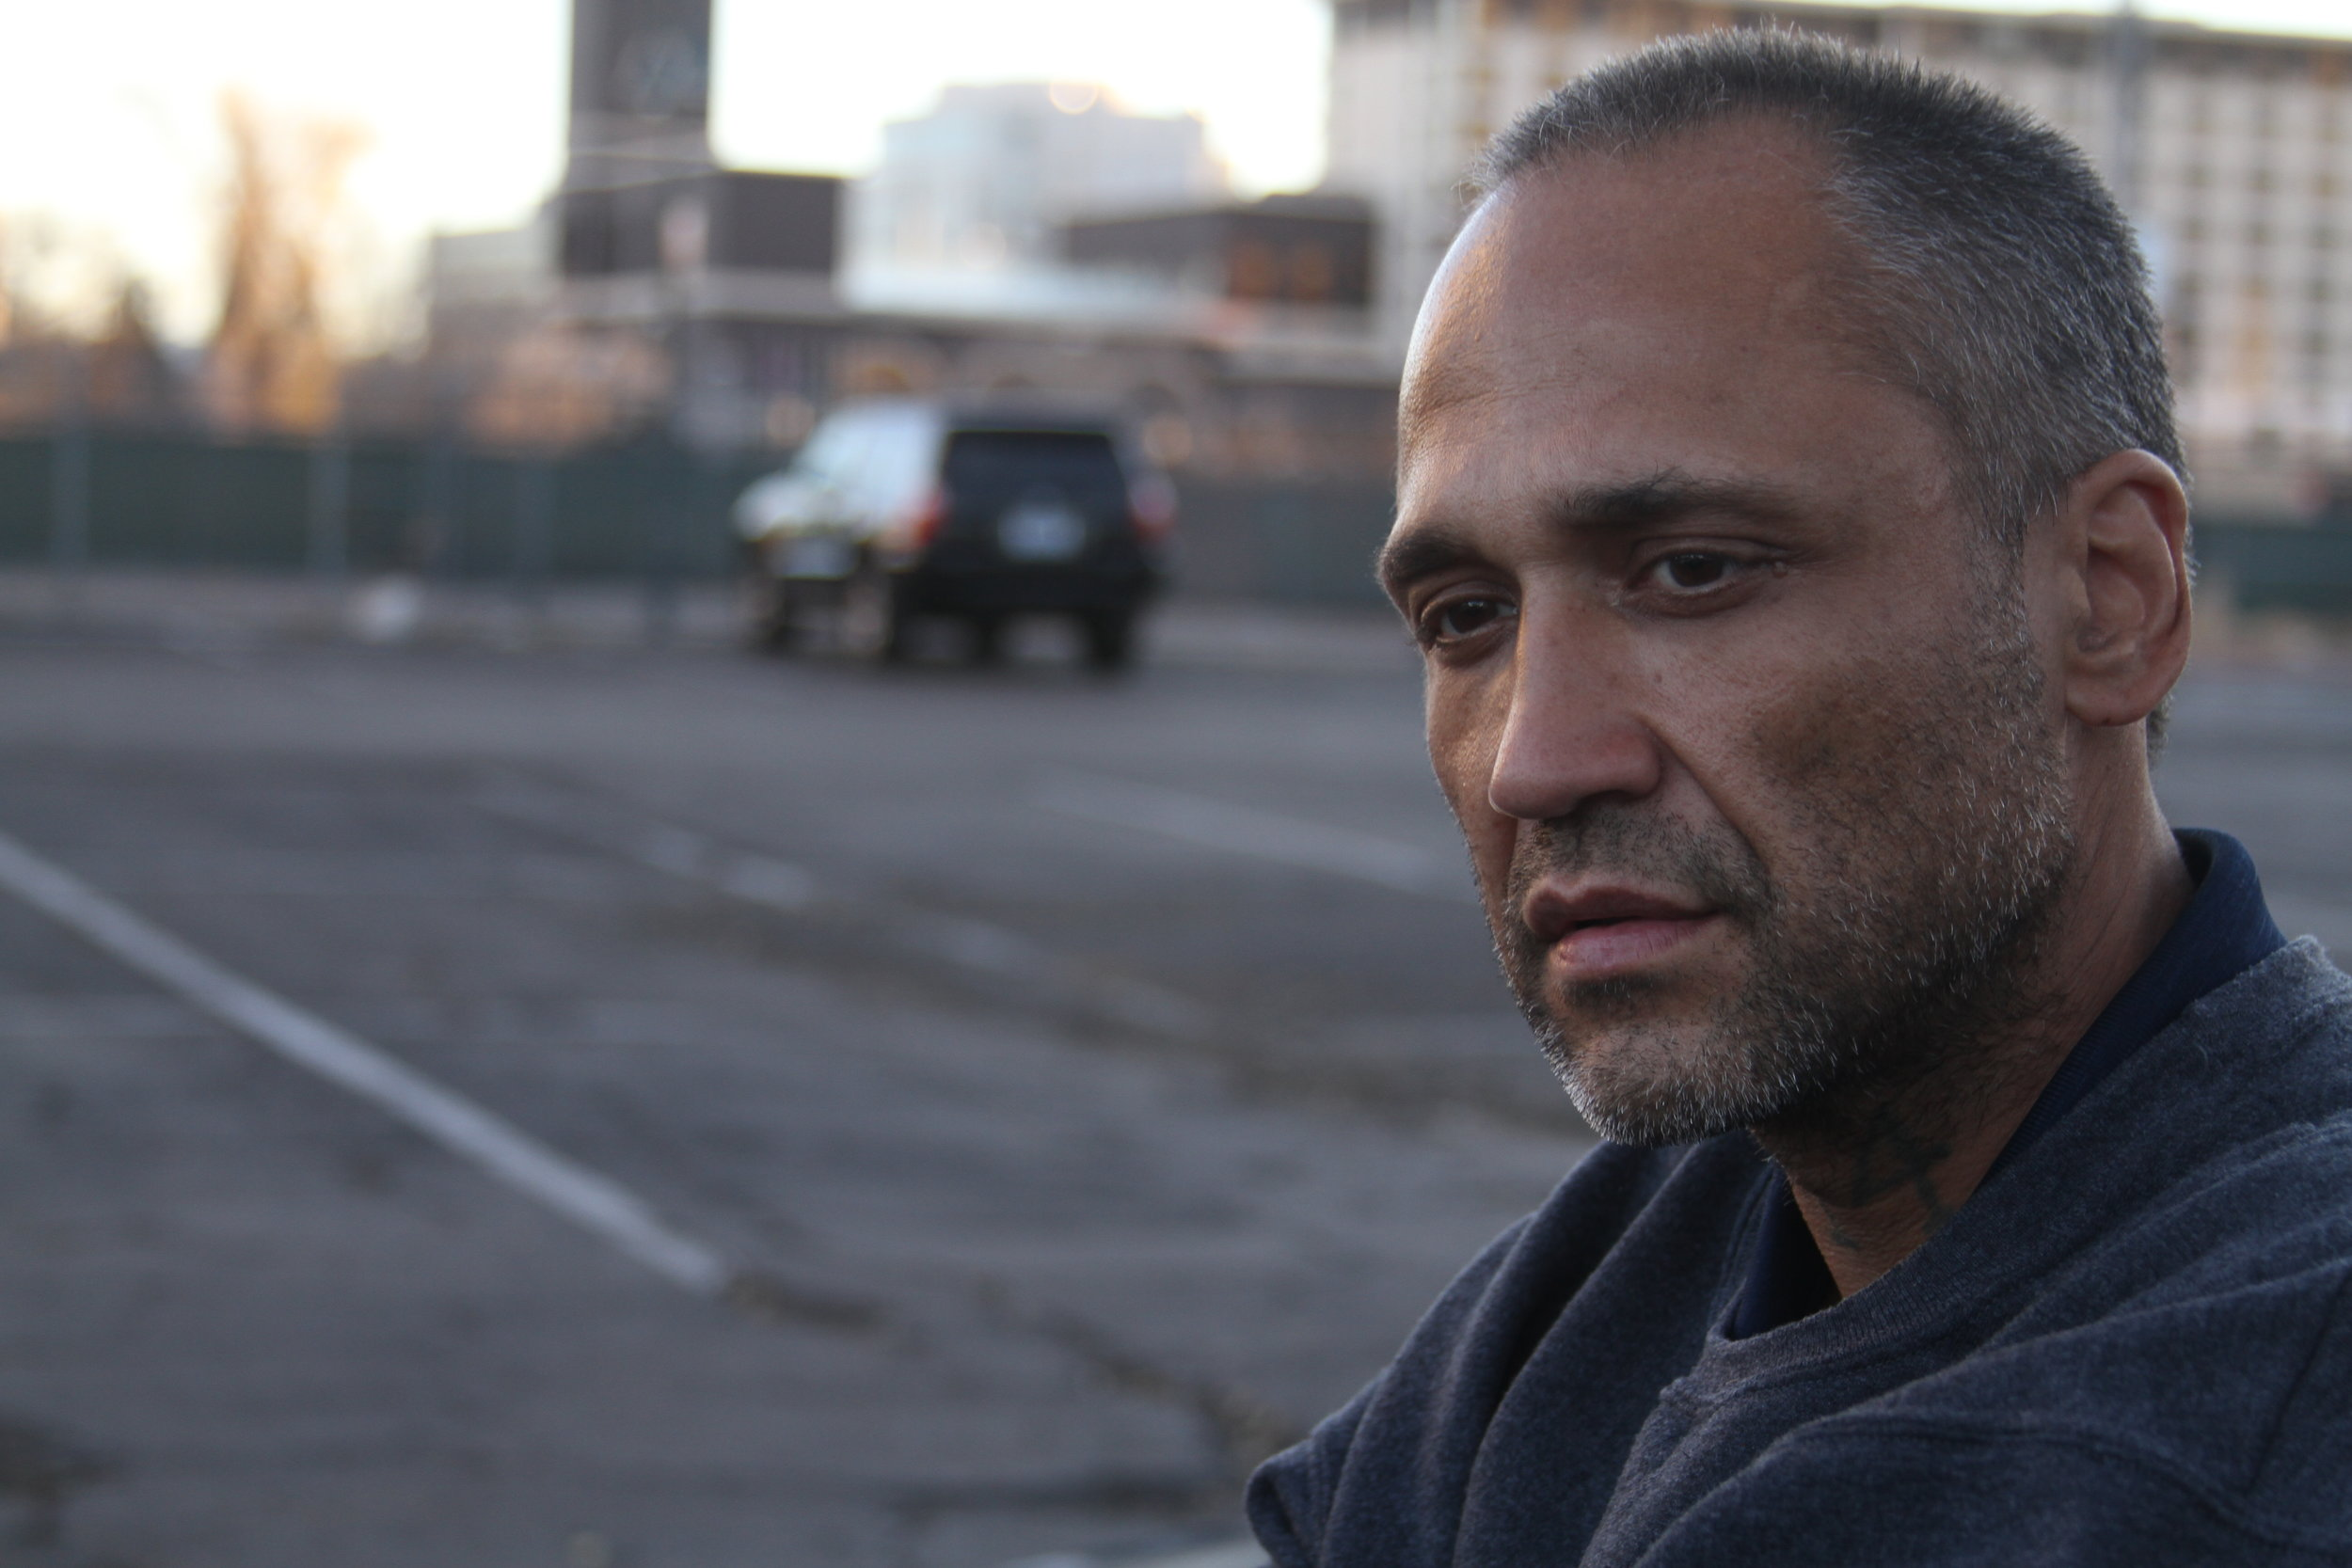 After weeks of contacting him, Our Town Reno was able to meet with Perez again and found out about his lifelong ordeals.